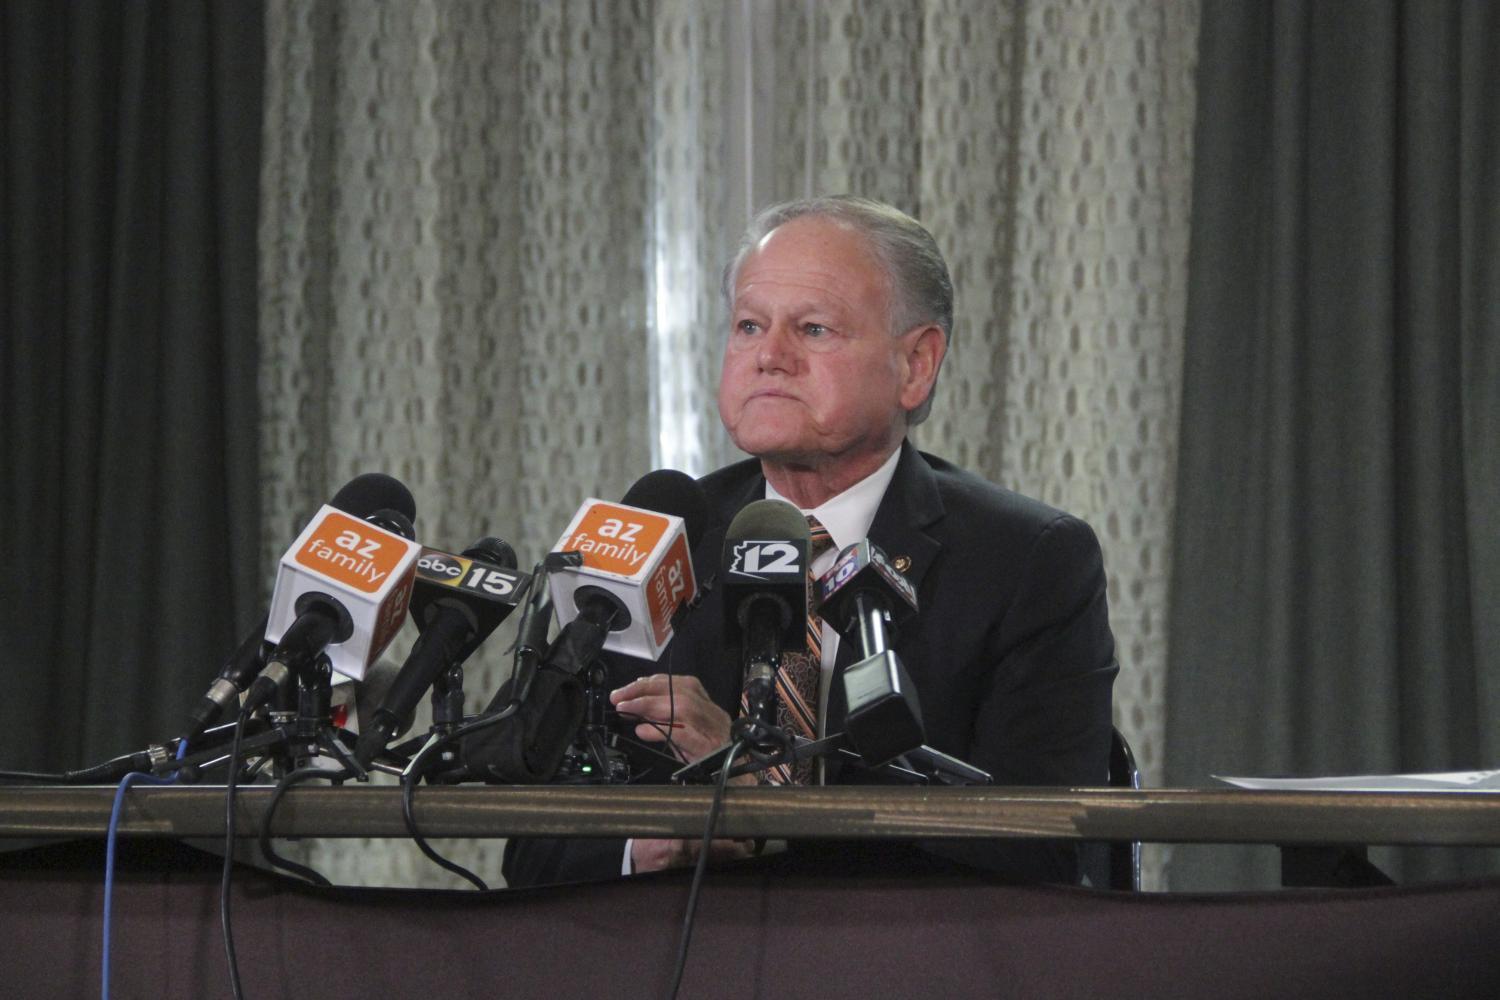 Rick Romley speaks at a press conference Monday, Jan. 14, 2019